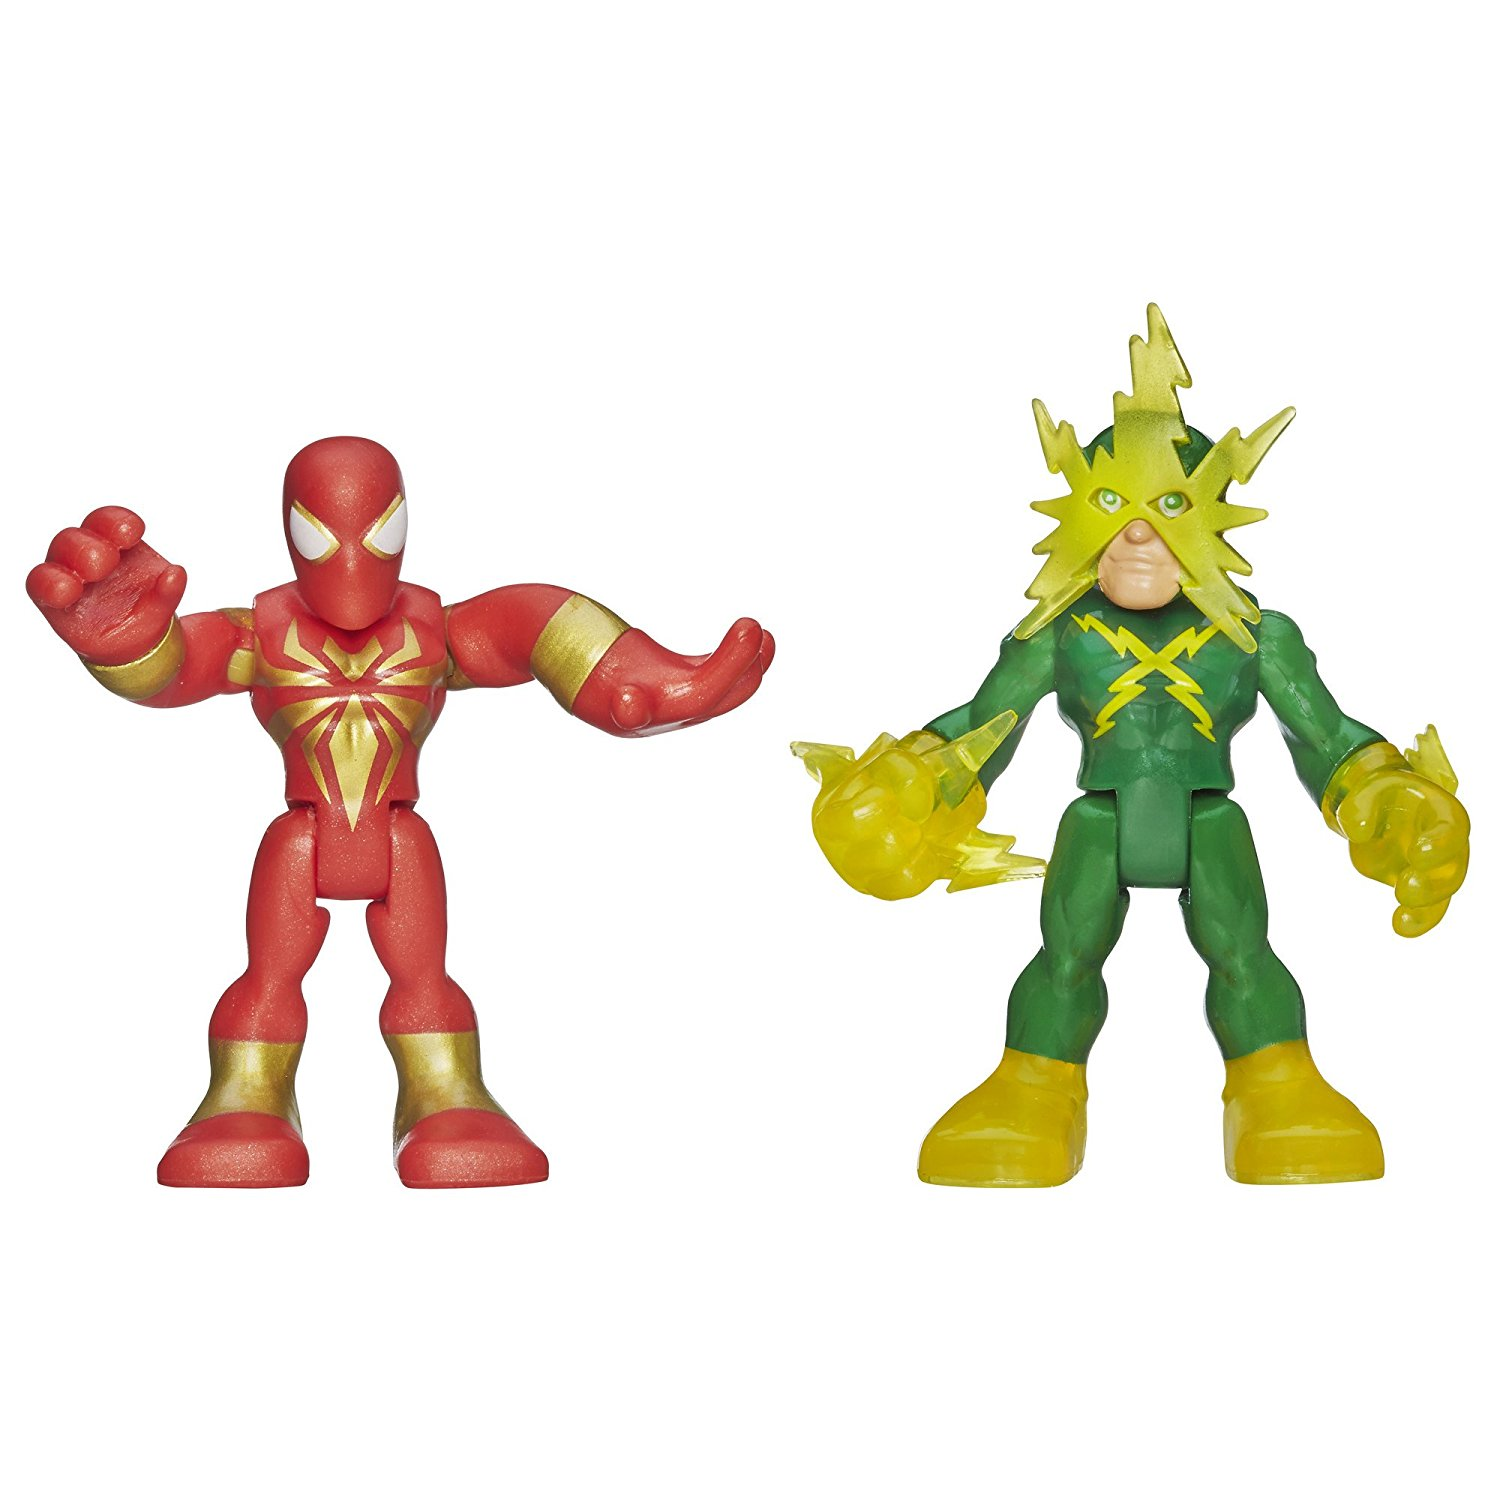 Heroes Marvel Super Hero Adventures Iron Spider-Man and Electro Figures, 2-pack includes 2... by